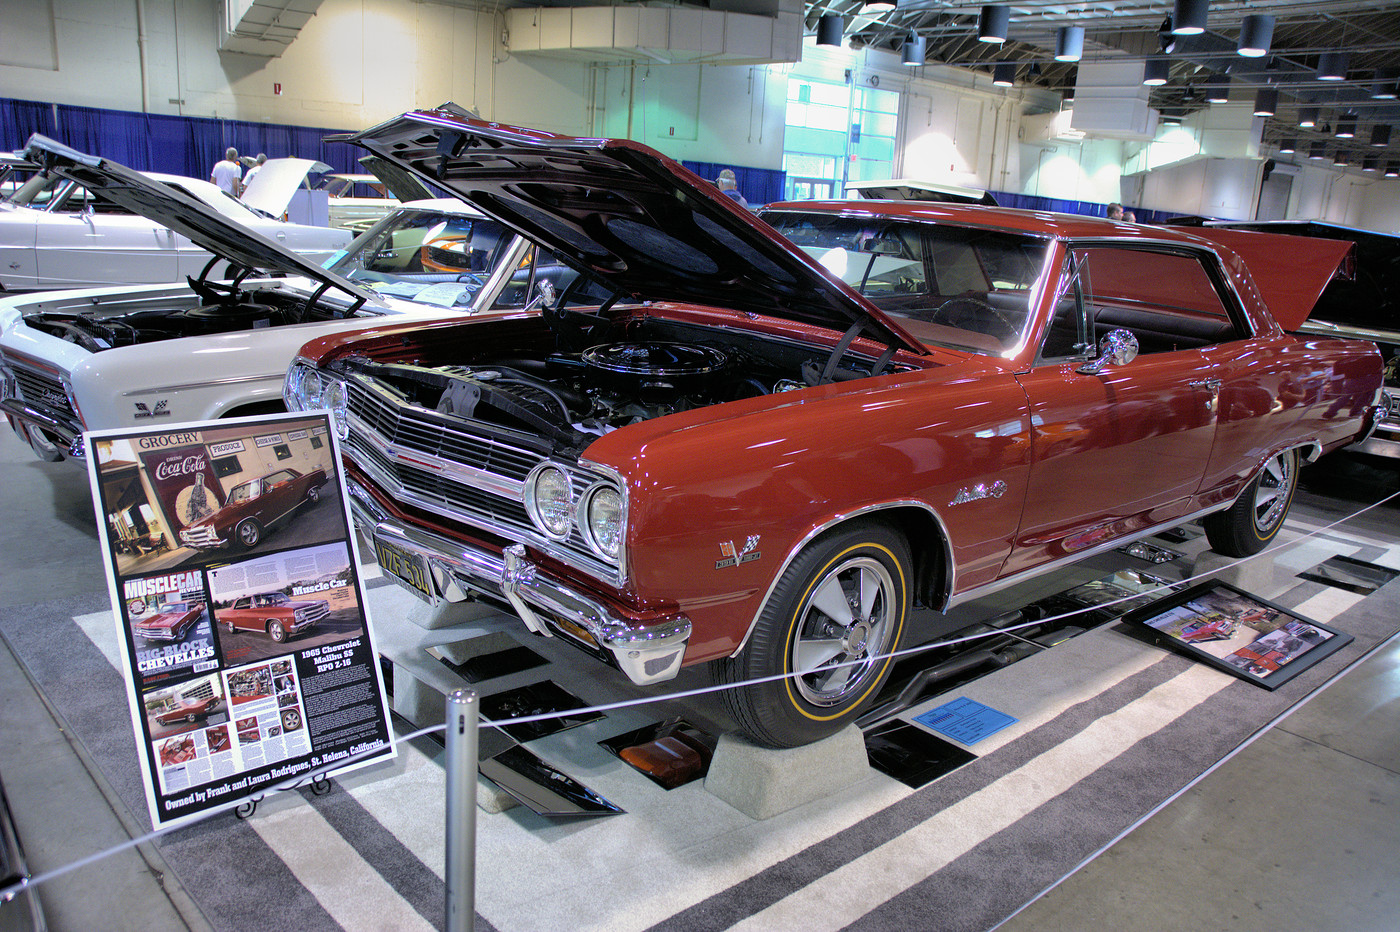 1965 Chevrolet Chevelle Malibu Z-16 owned by Frank and Laura Rodrigues DSC 4863 -1